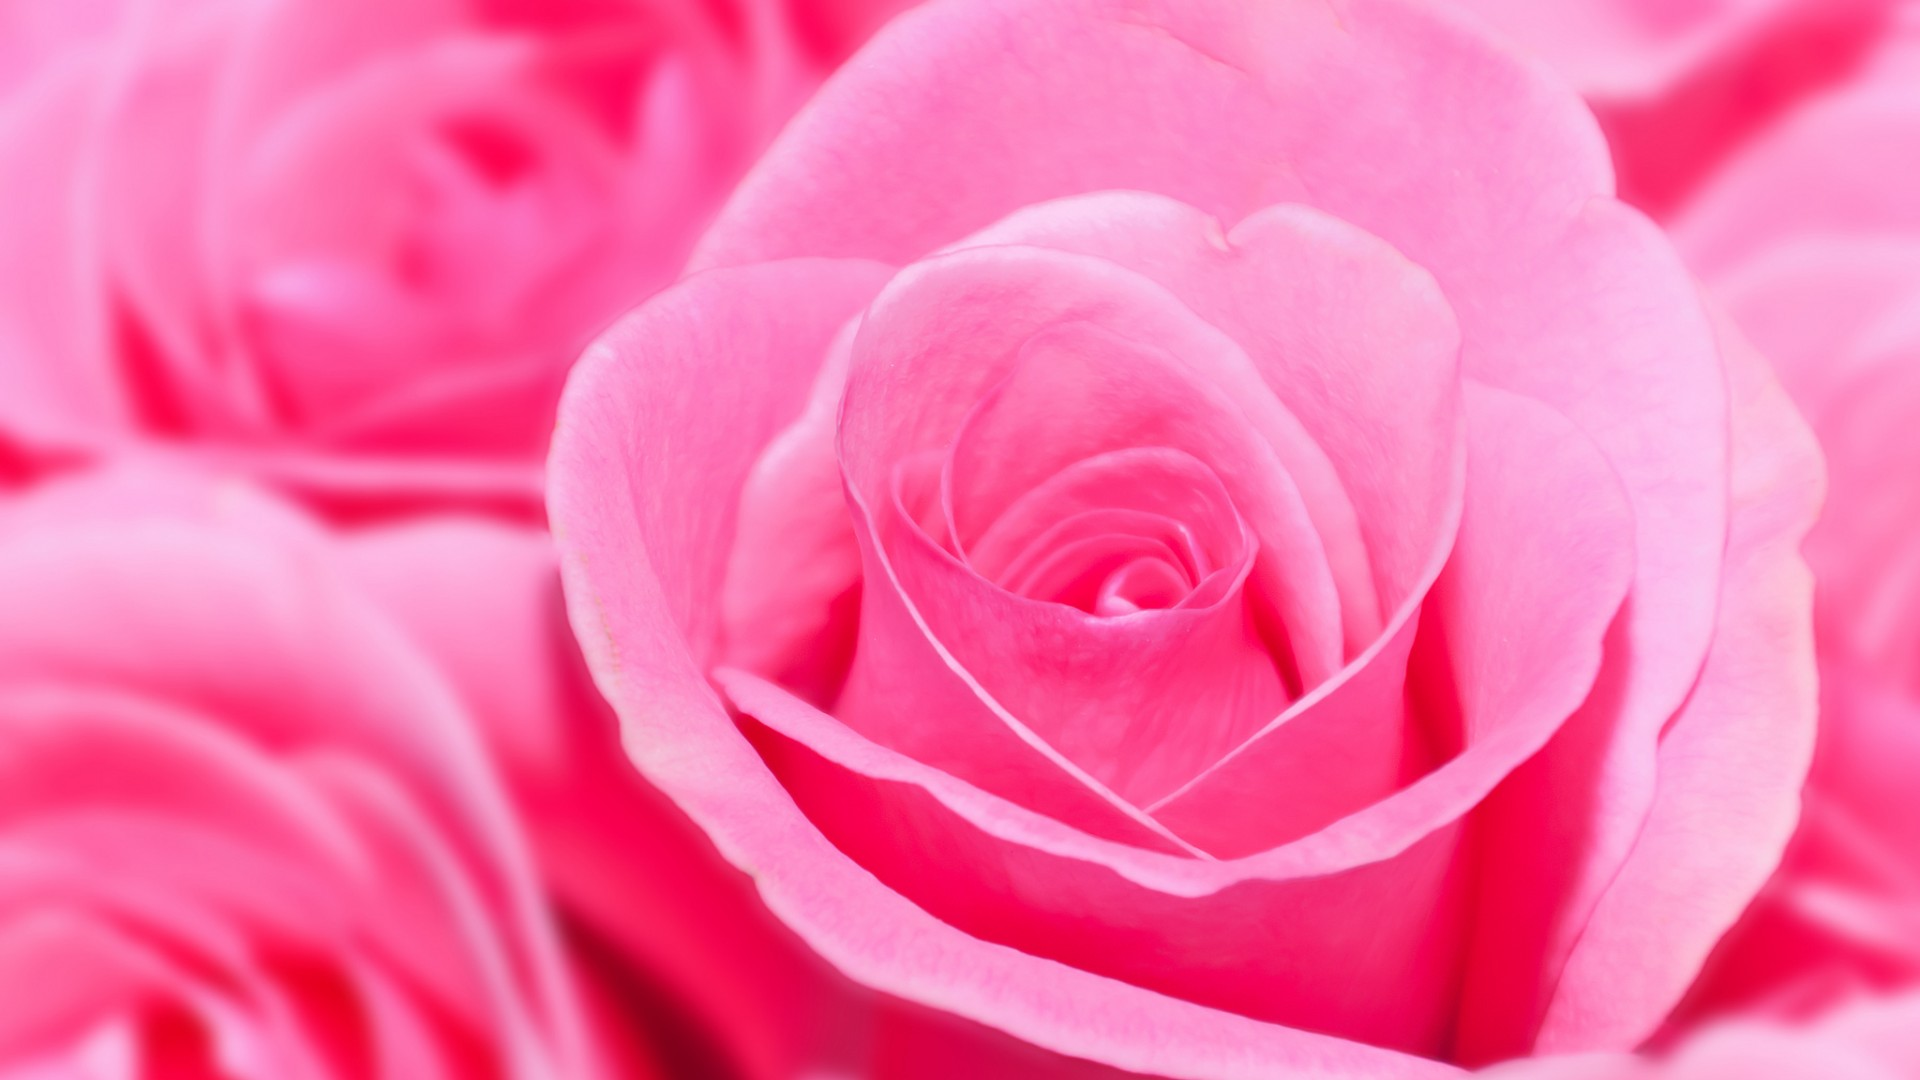 Pink Rose HD Wallpapers,